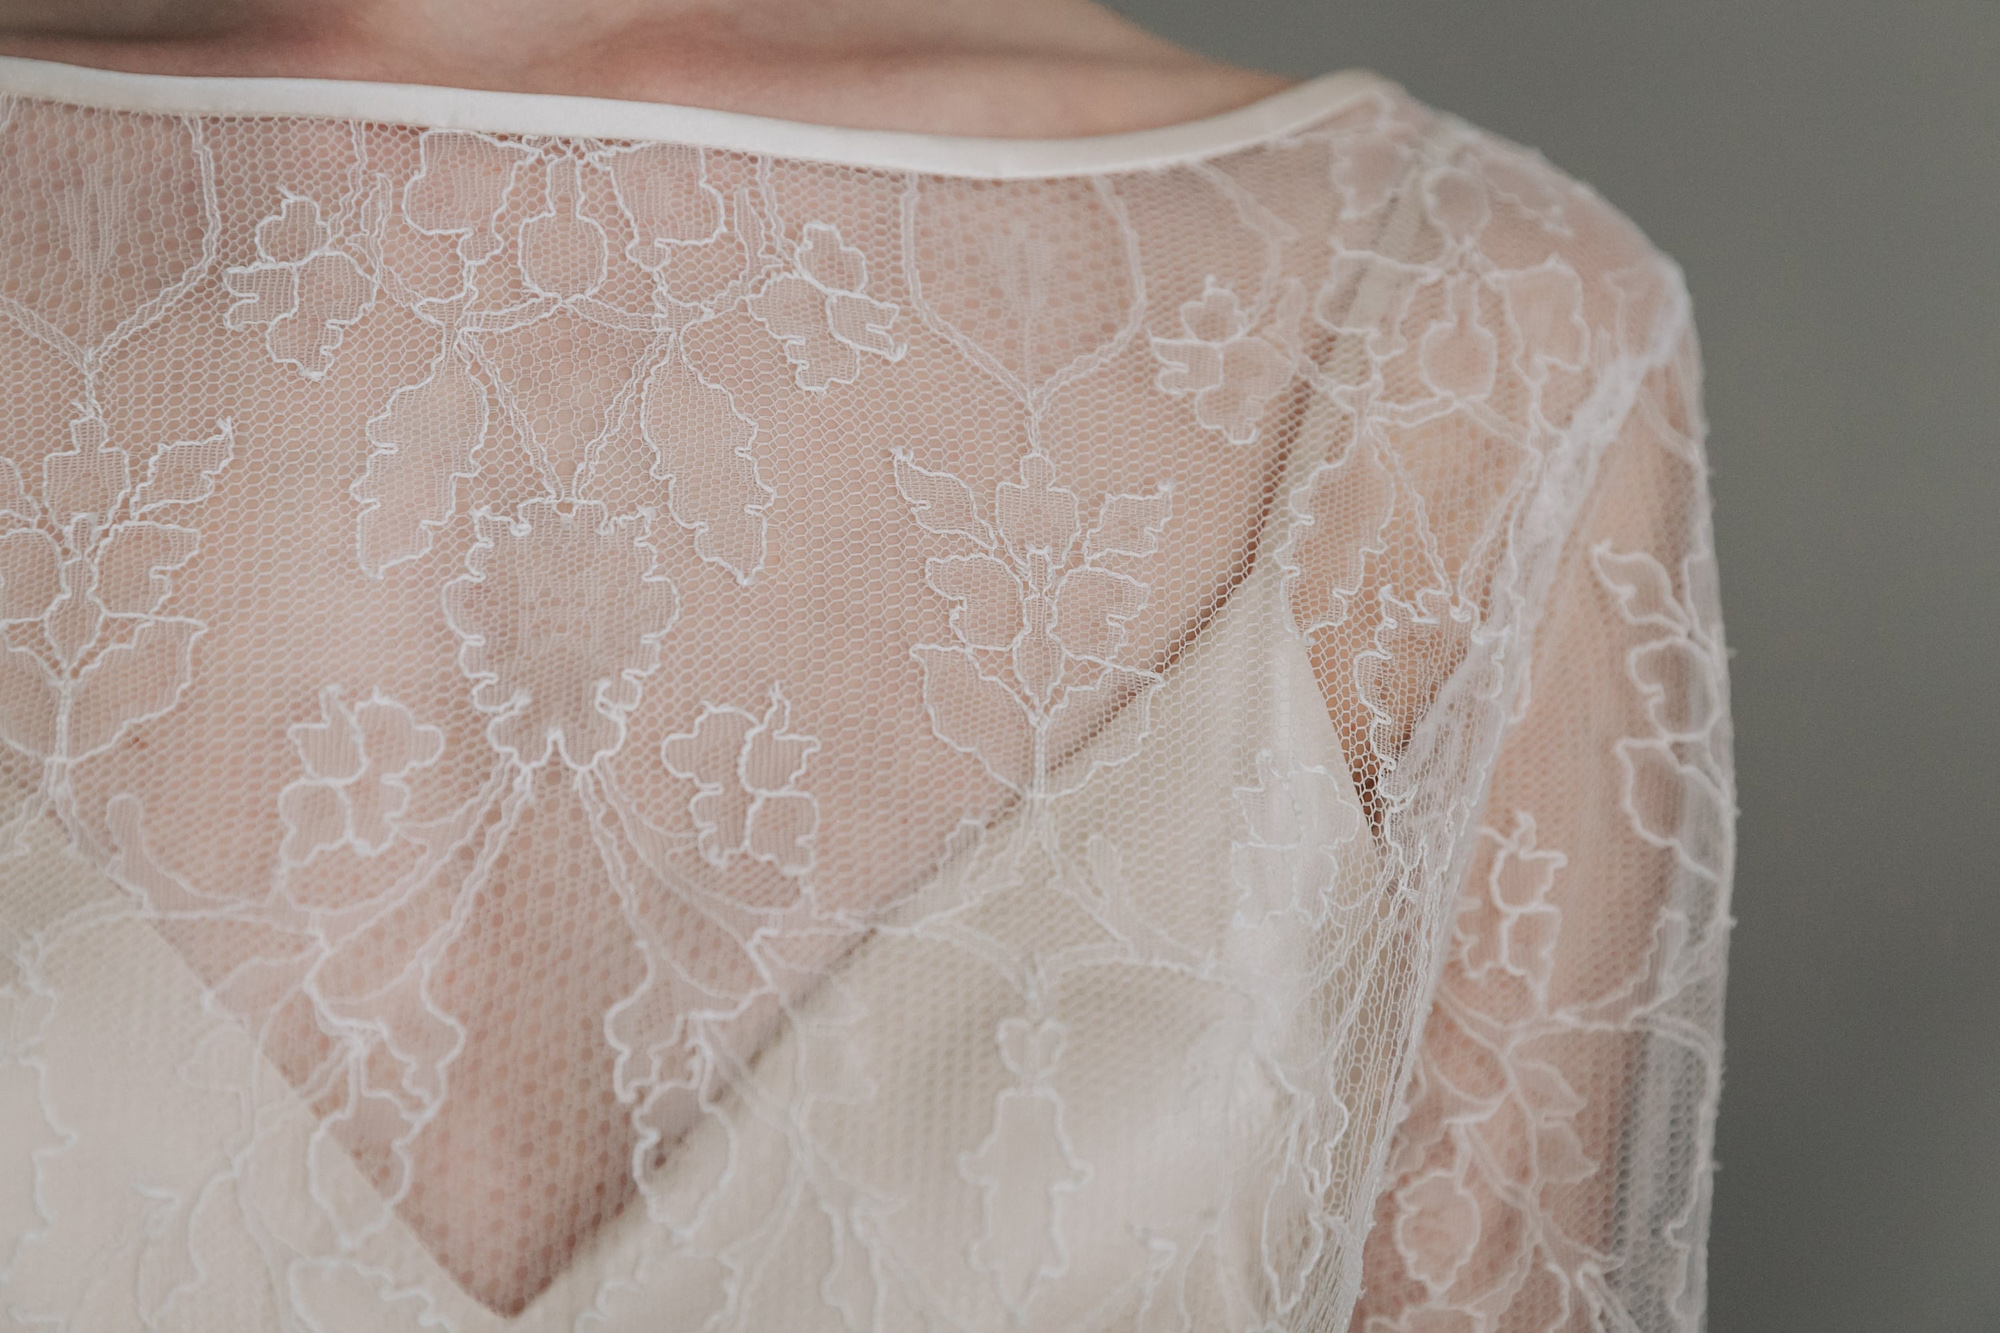 Kate-Beaumont-Sheffield-Thistle-Bridal-Separates-Two-Piece-Lace-Silk-Wedding-Gown-6.jpg